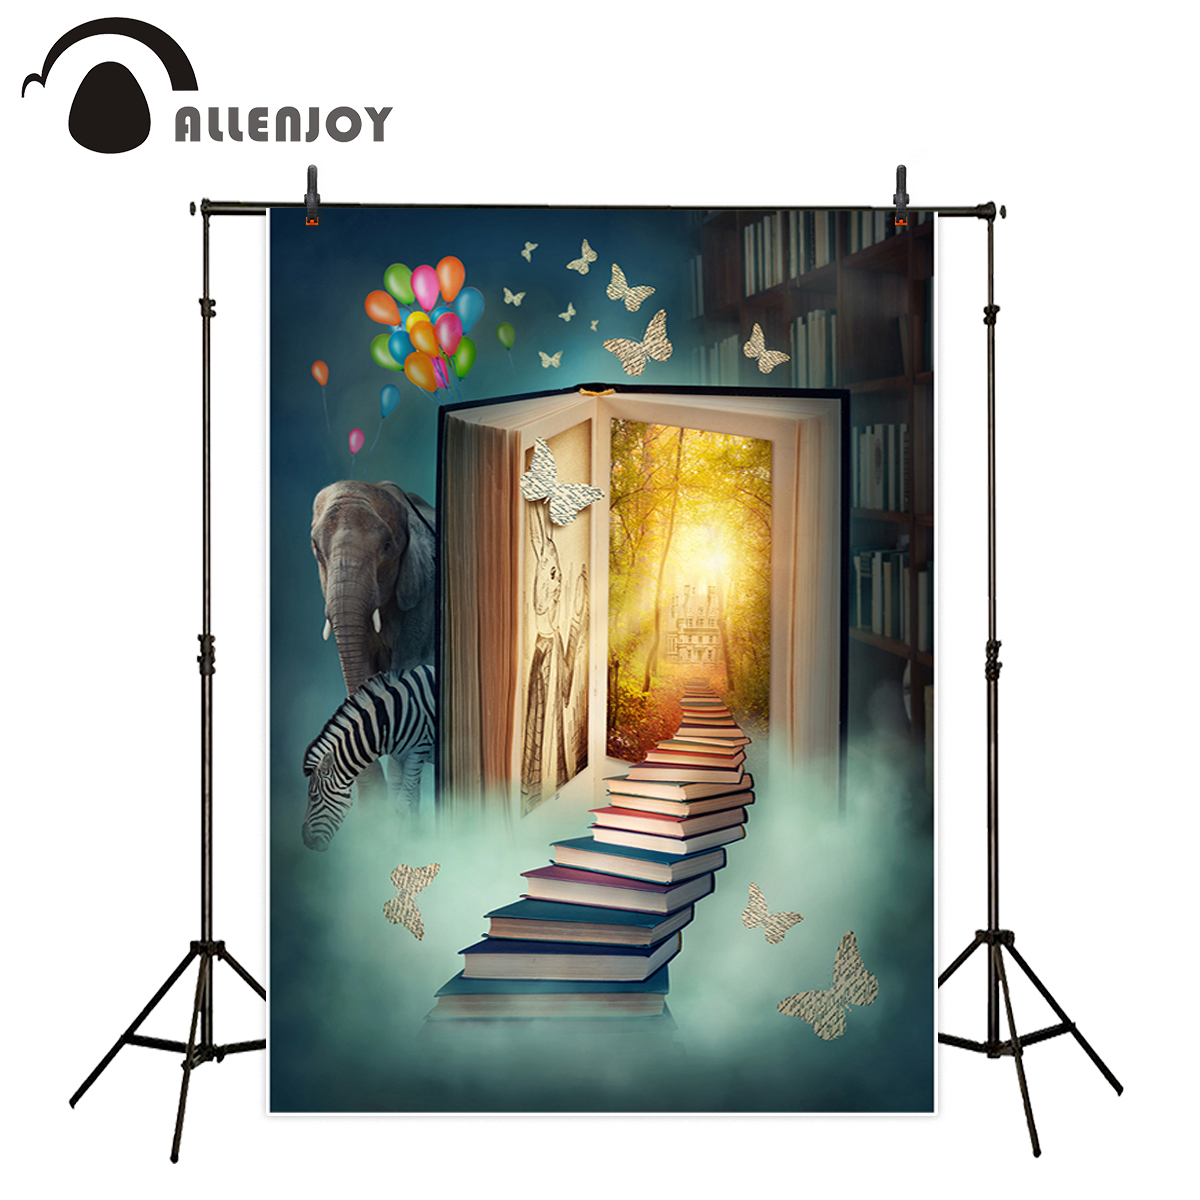 Allenjoy vinyl photographic background Dream animals cute book balloon children backdrop photocall professional customize